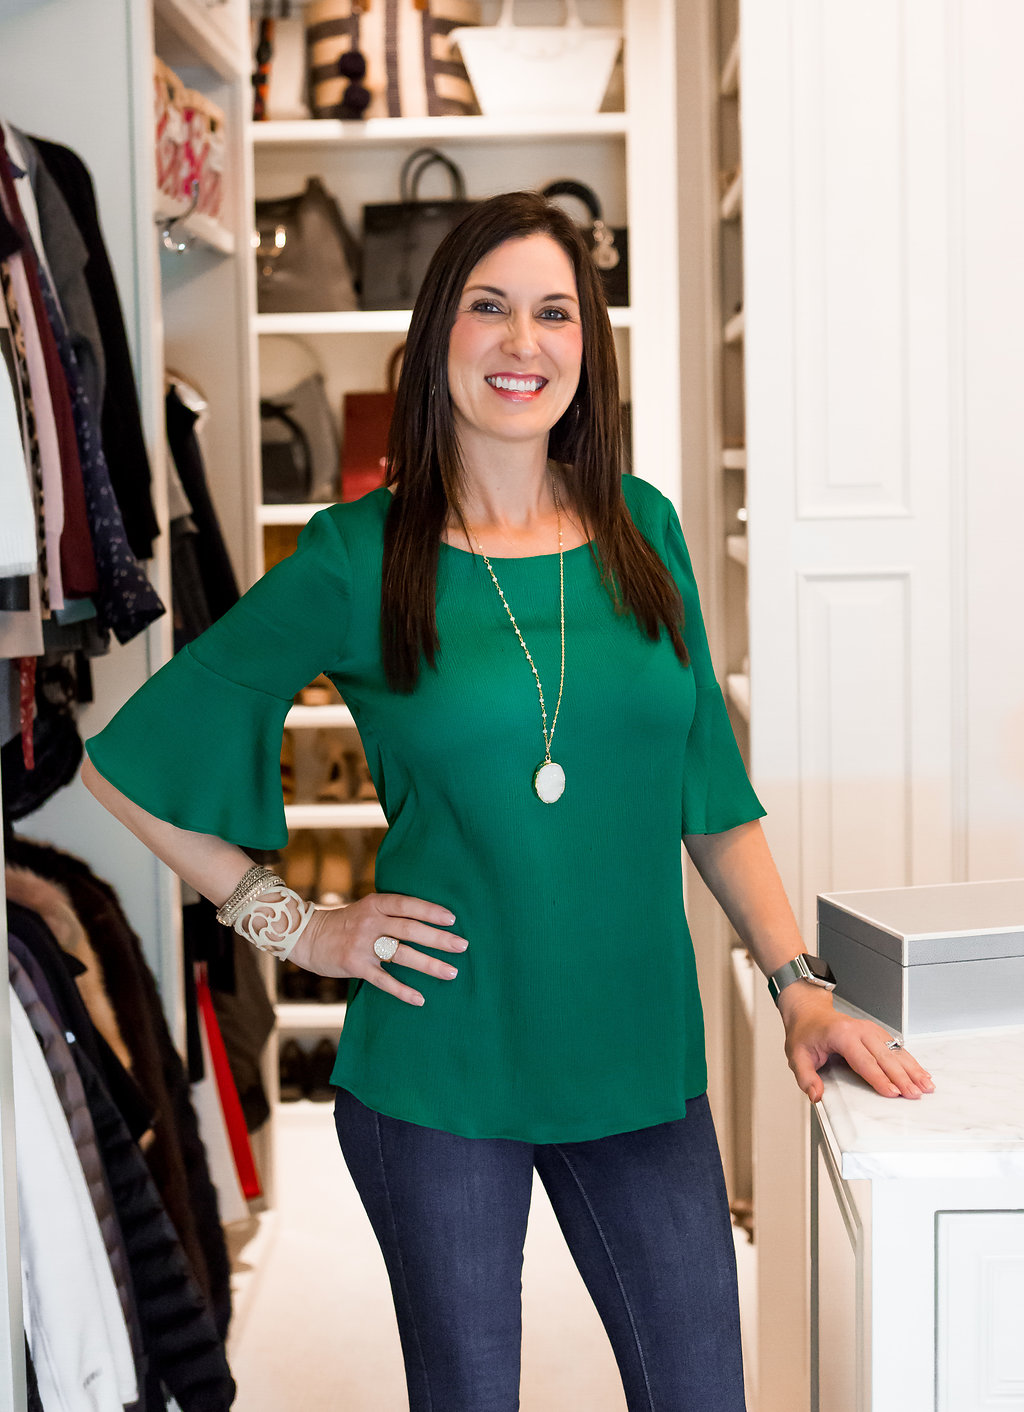 10 Tips to Organize Your Closet Like a Pro from Tonia Tomlin